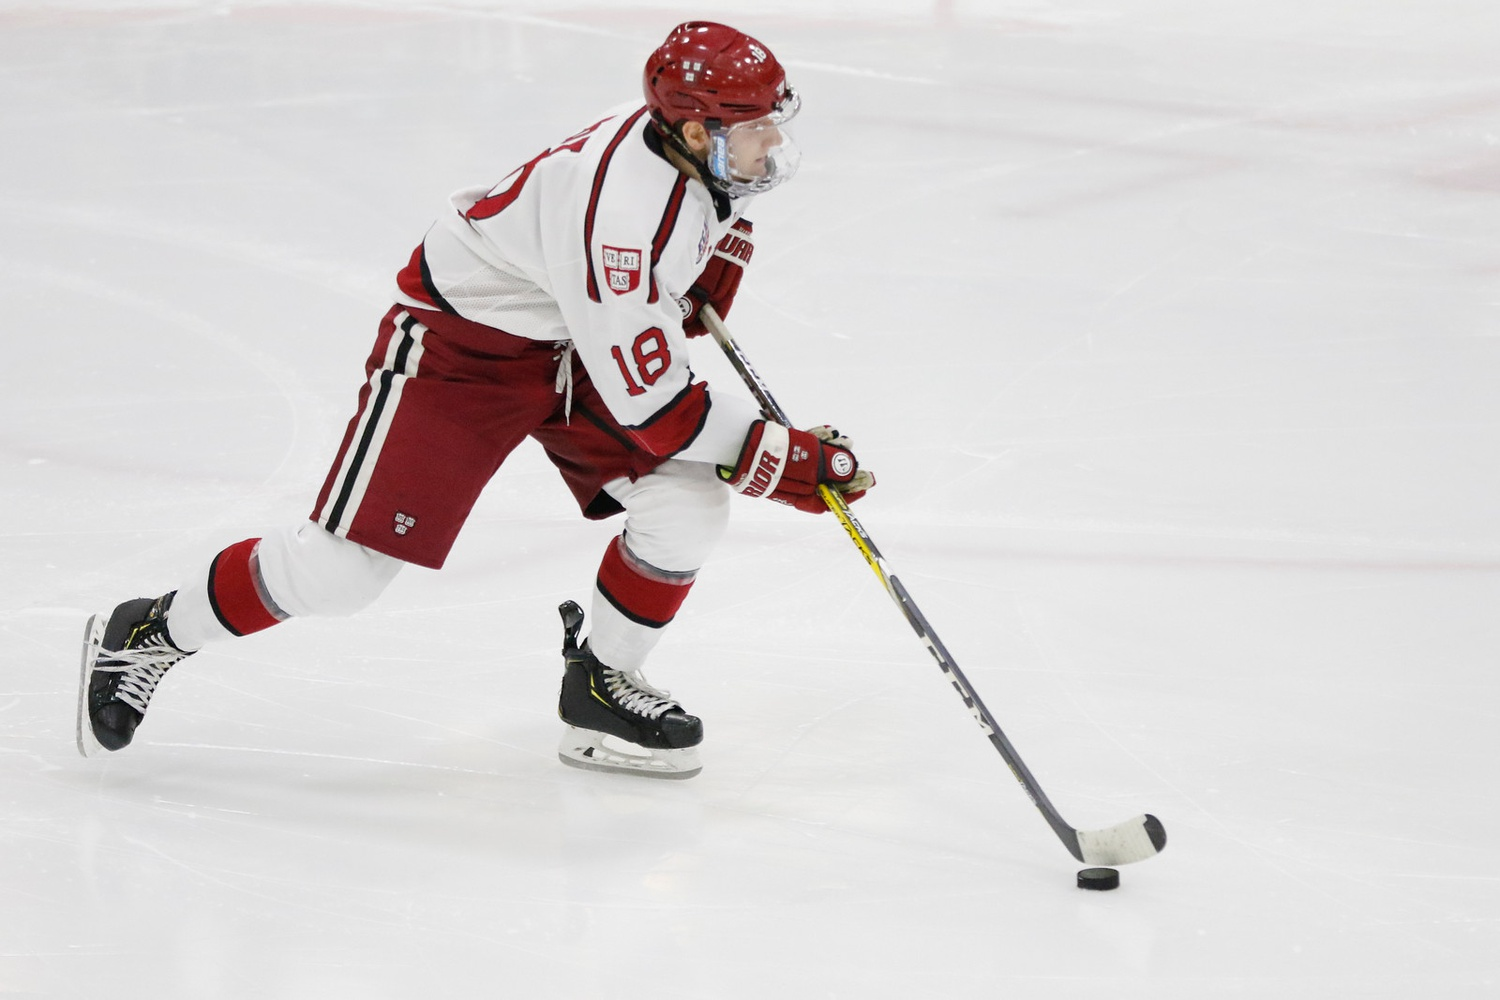 Junior defenseman Adam Fox will clash on Friday with another one of the NCAA's elite blue-liners, UMass sophomore Cale Makar. Both rearguards are contenders for this year's Hobey Baker Award, given to college hockey's most outstanding player.